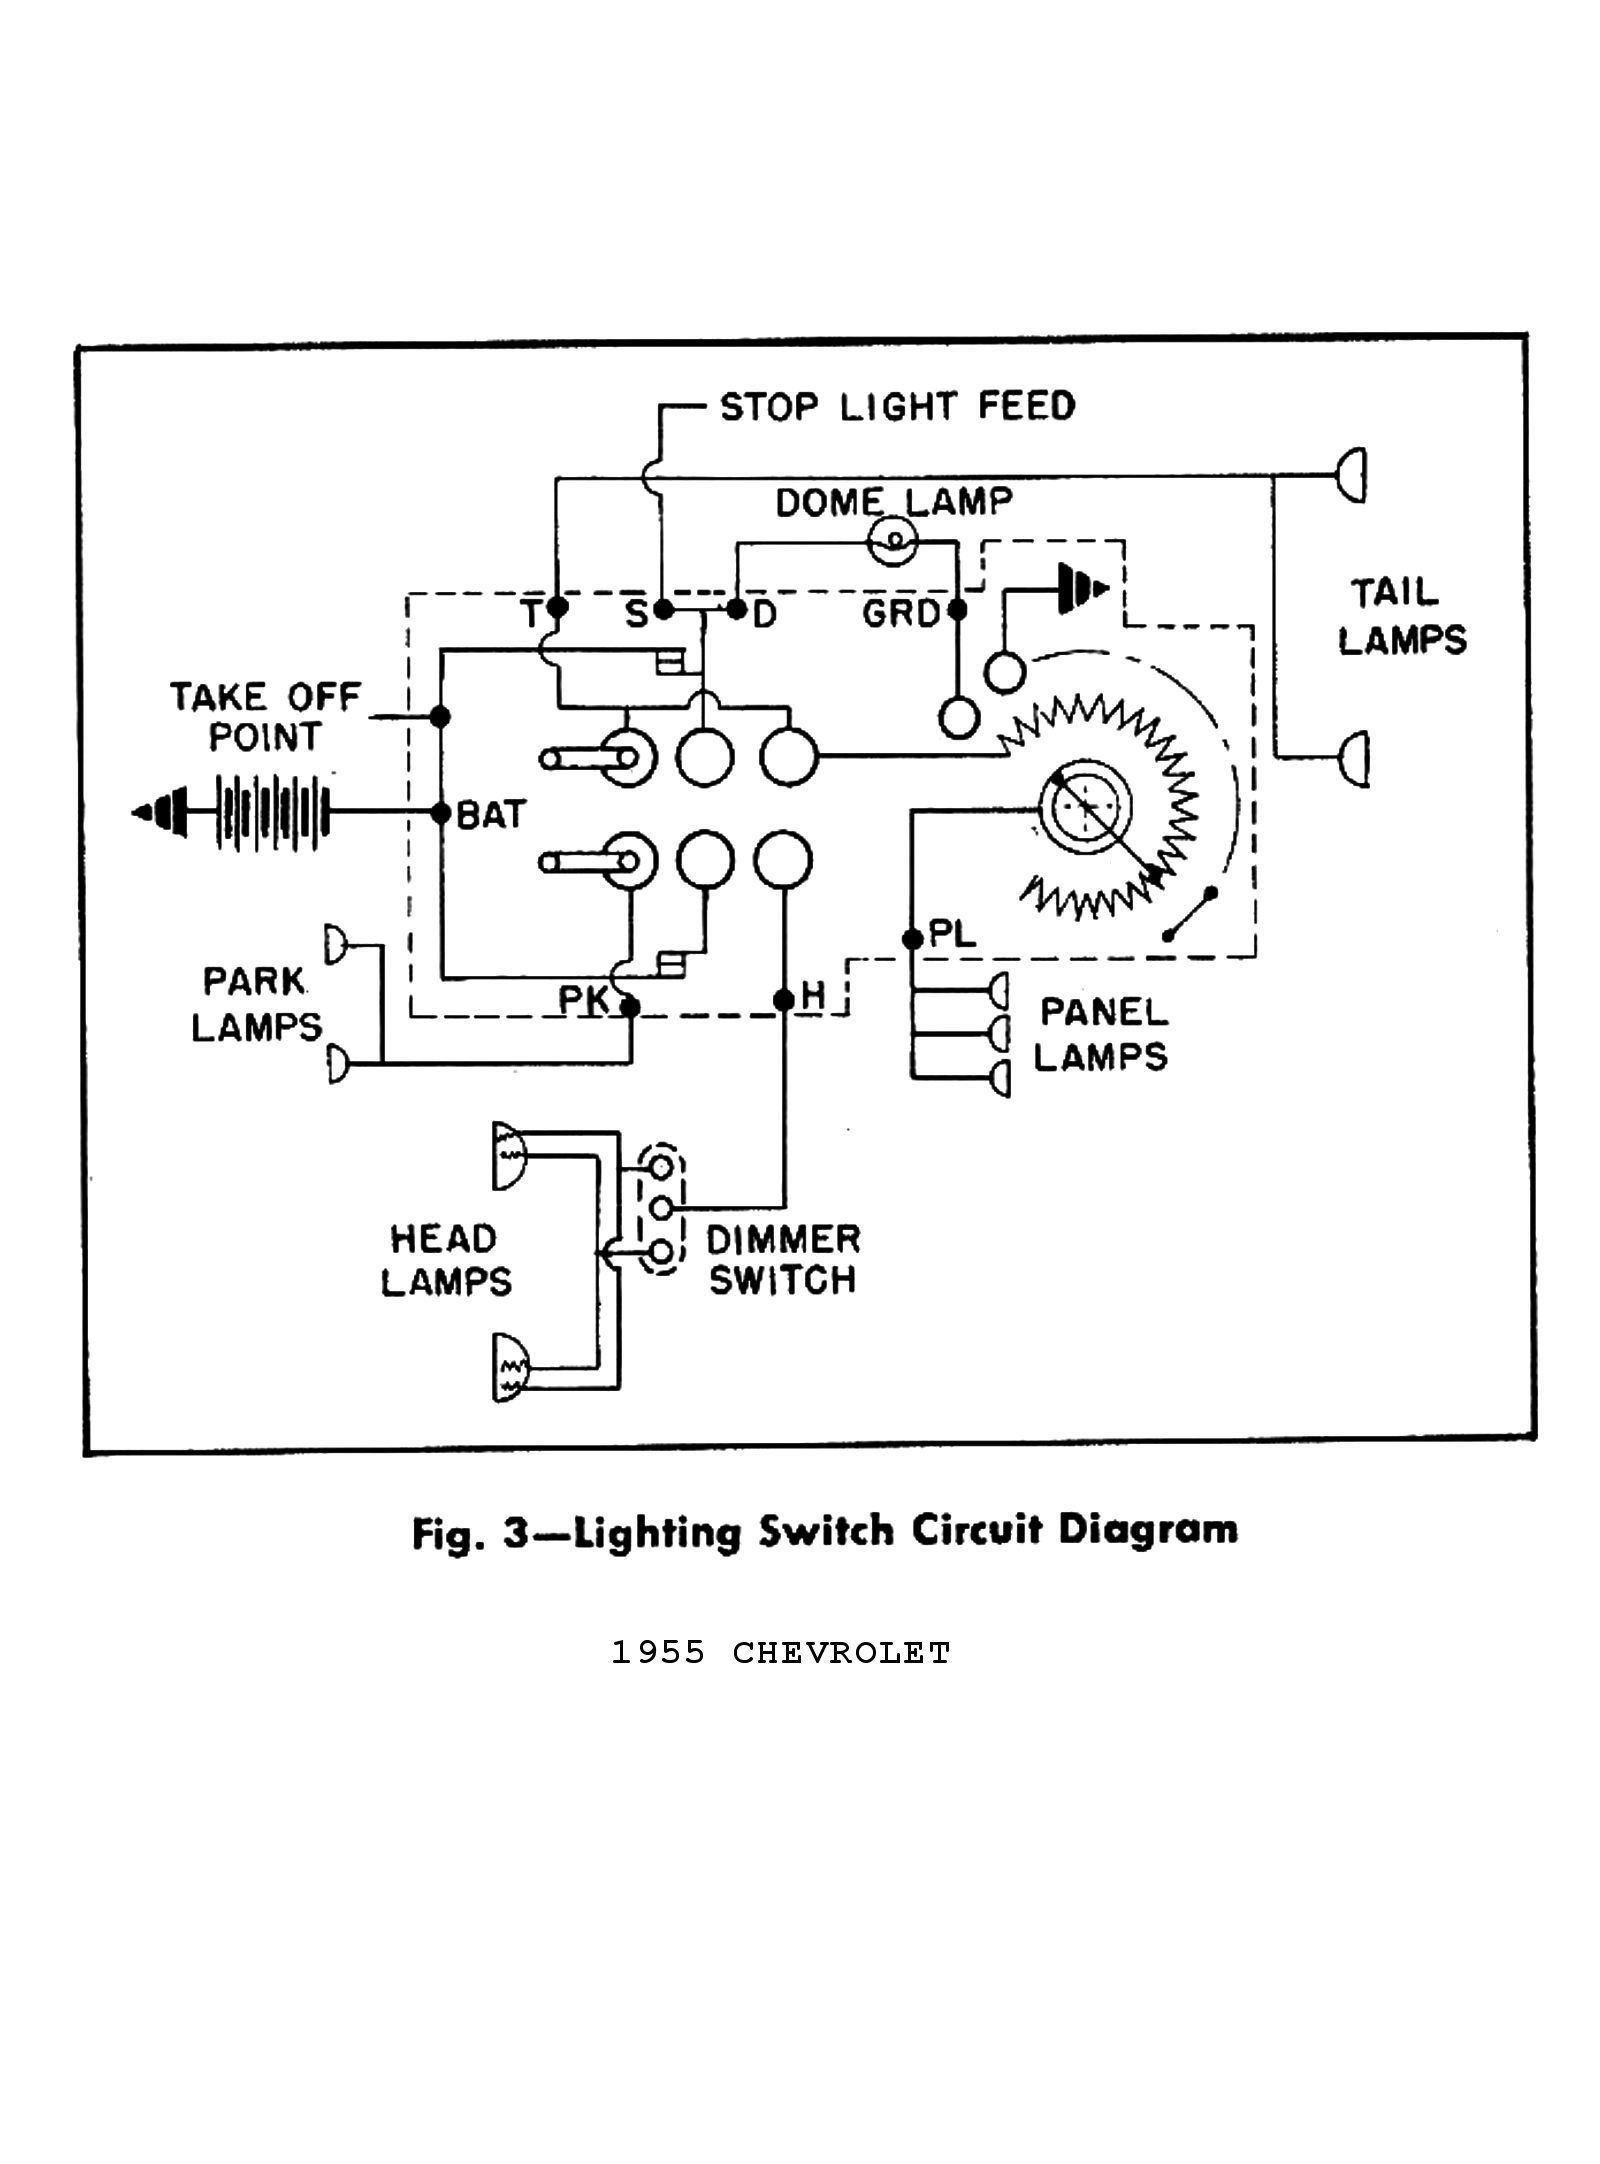 hight resolution of 55 chevy ignition switch wiring diagram wiring diagram yer 1980 chevy truck ignition wiring diagram truck ignition wiring diagram